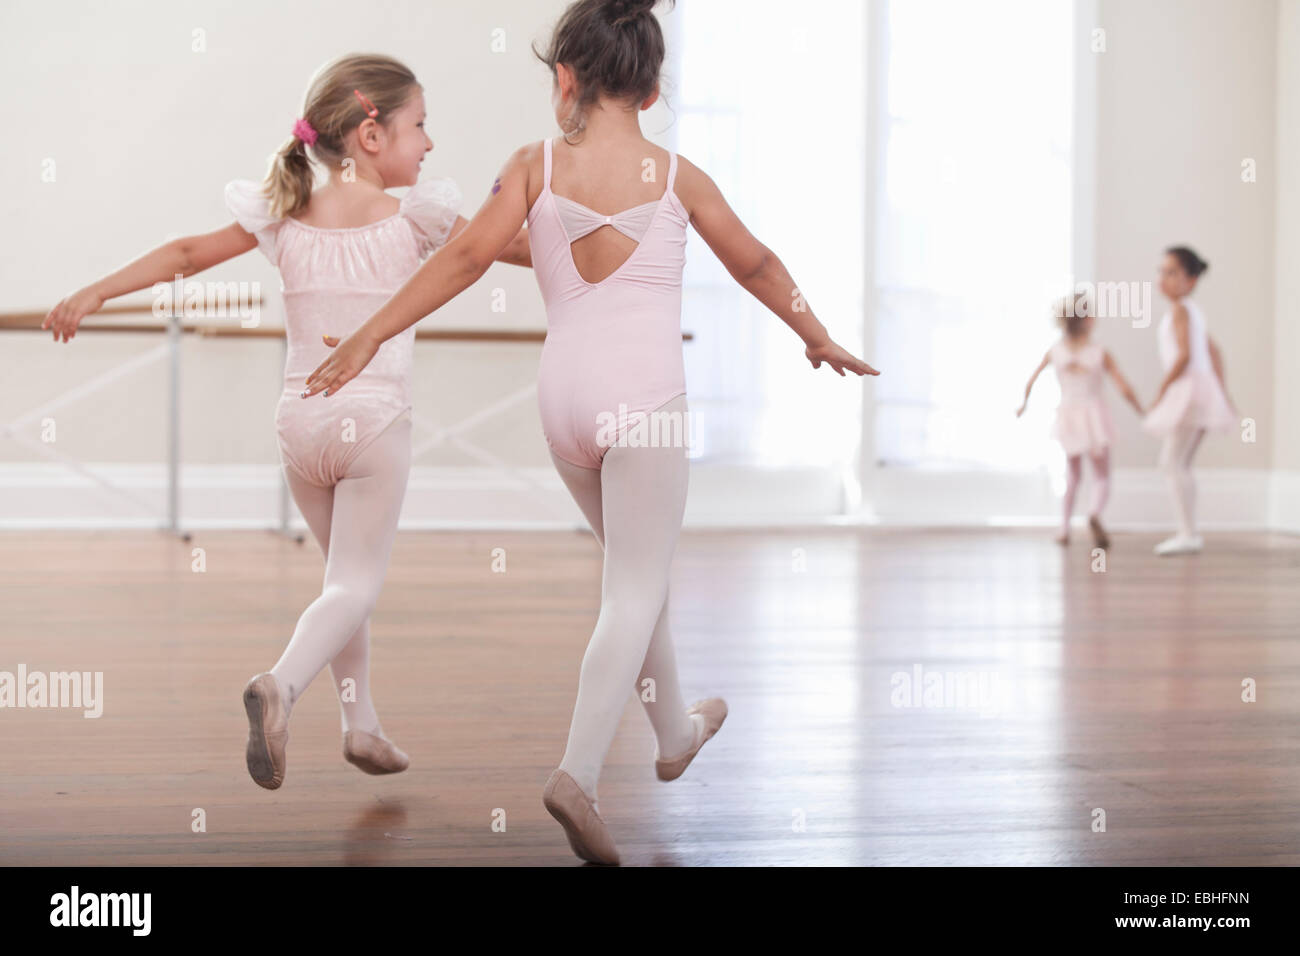 Rear view of girls practicing jump in ballet school - Stock Image